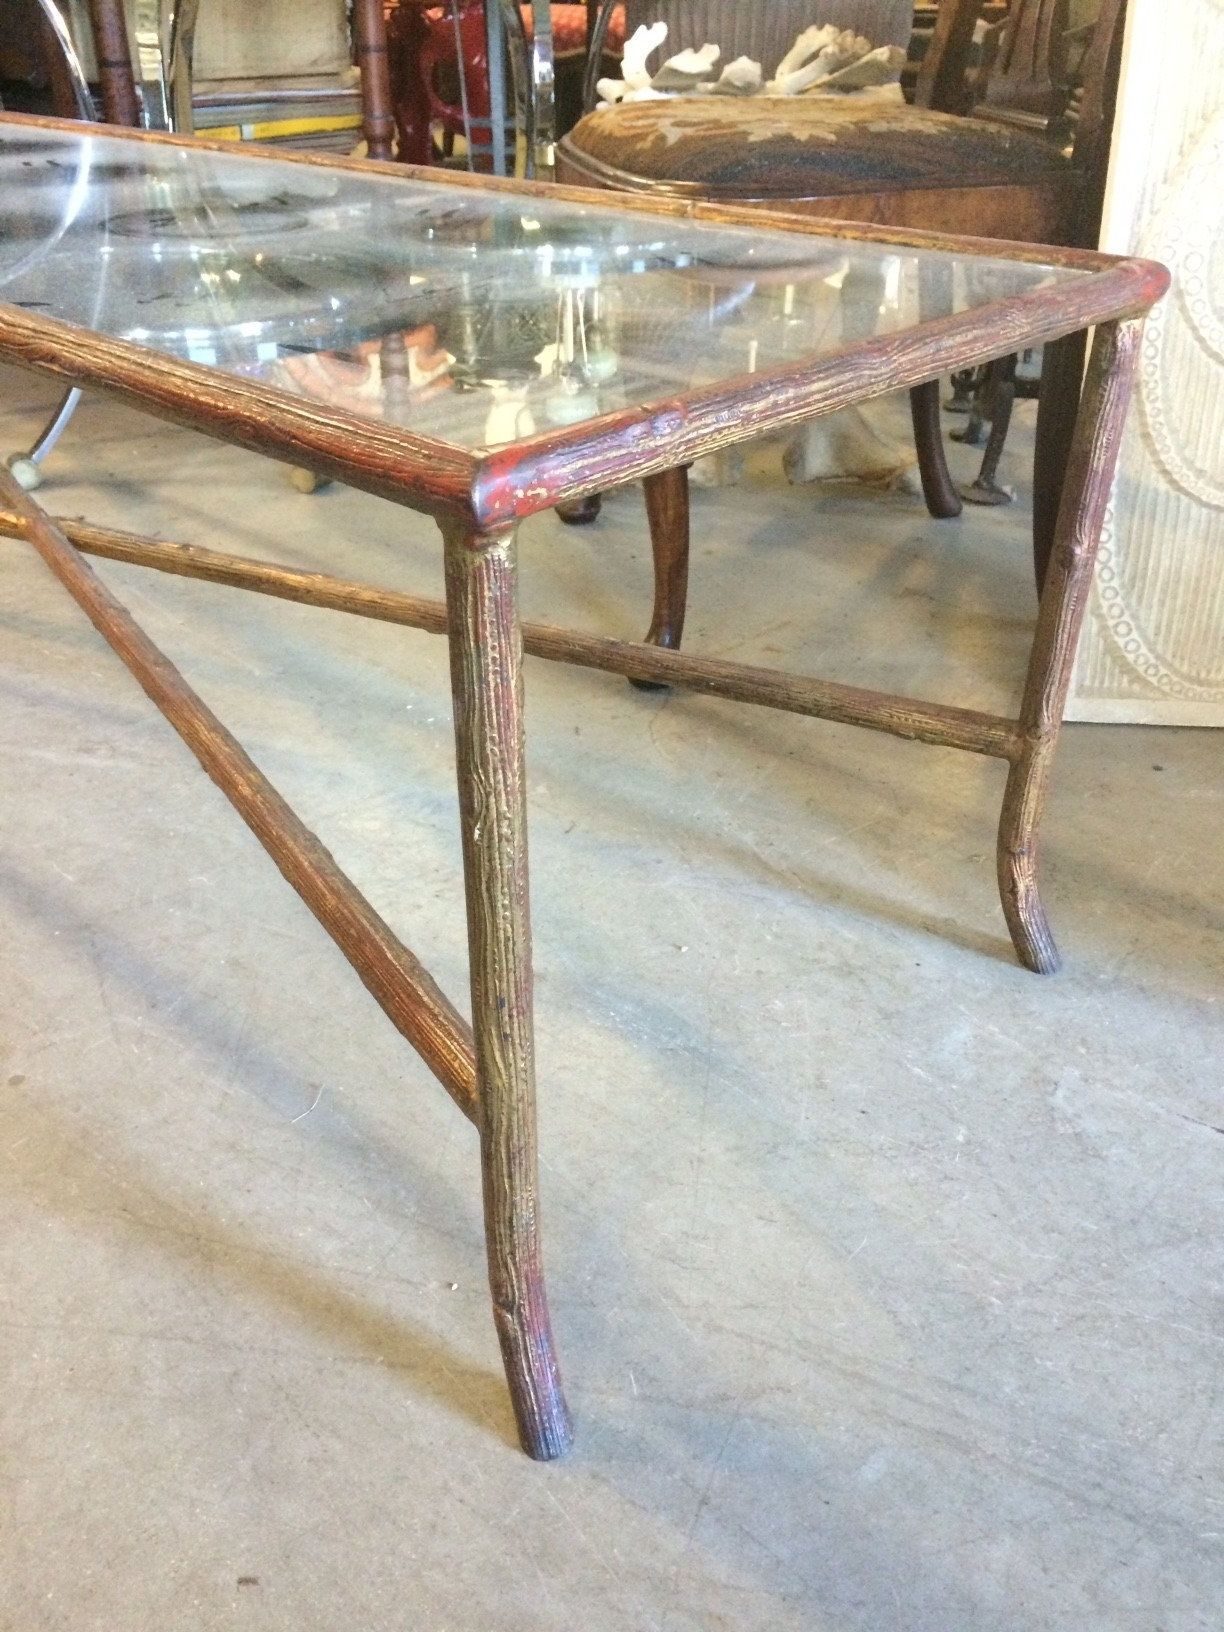 Long Narrow Bagues Style Faux Bois Coffee Table At 1stdibs With Regard To Most Recent Faux Bois Coffee Tables (View 3 of 20)